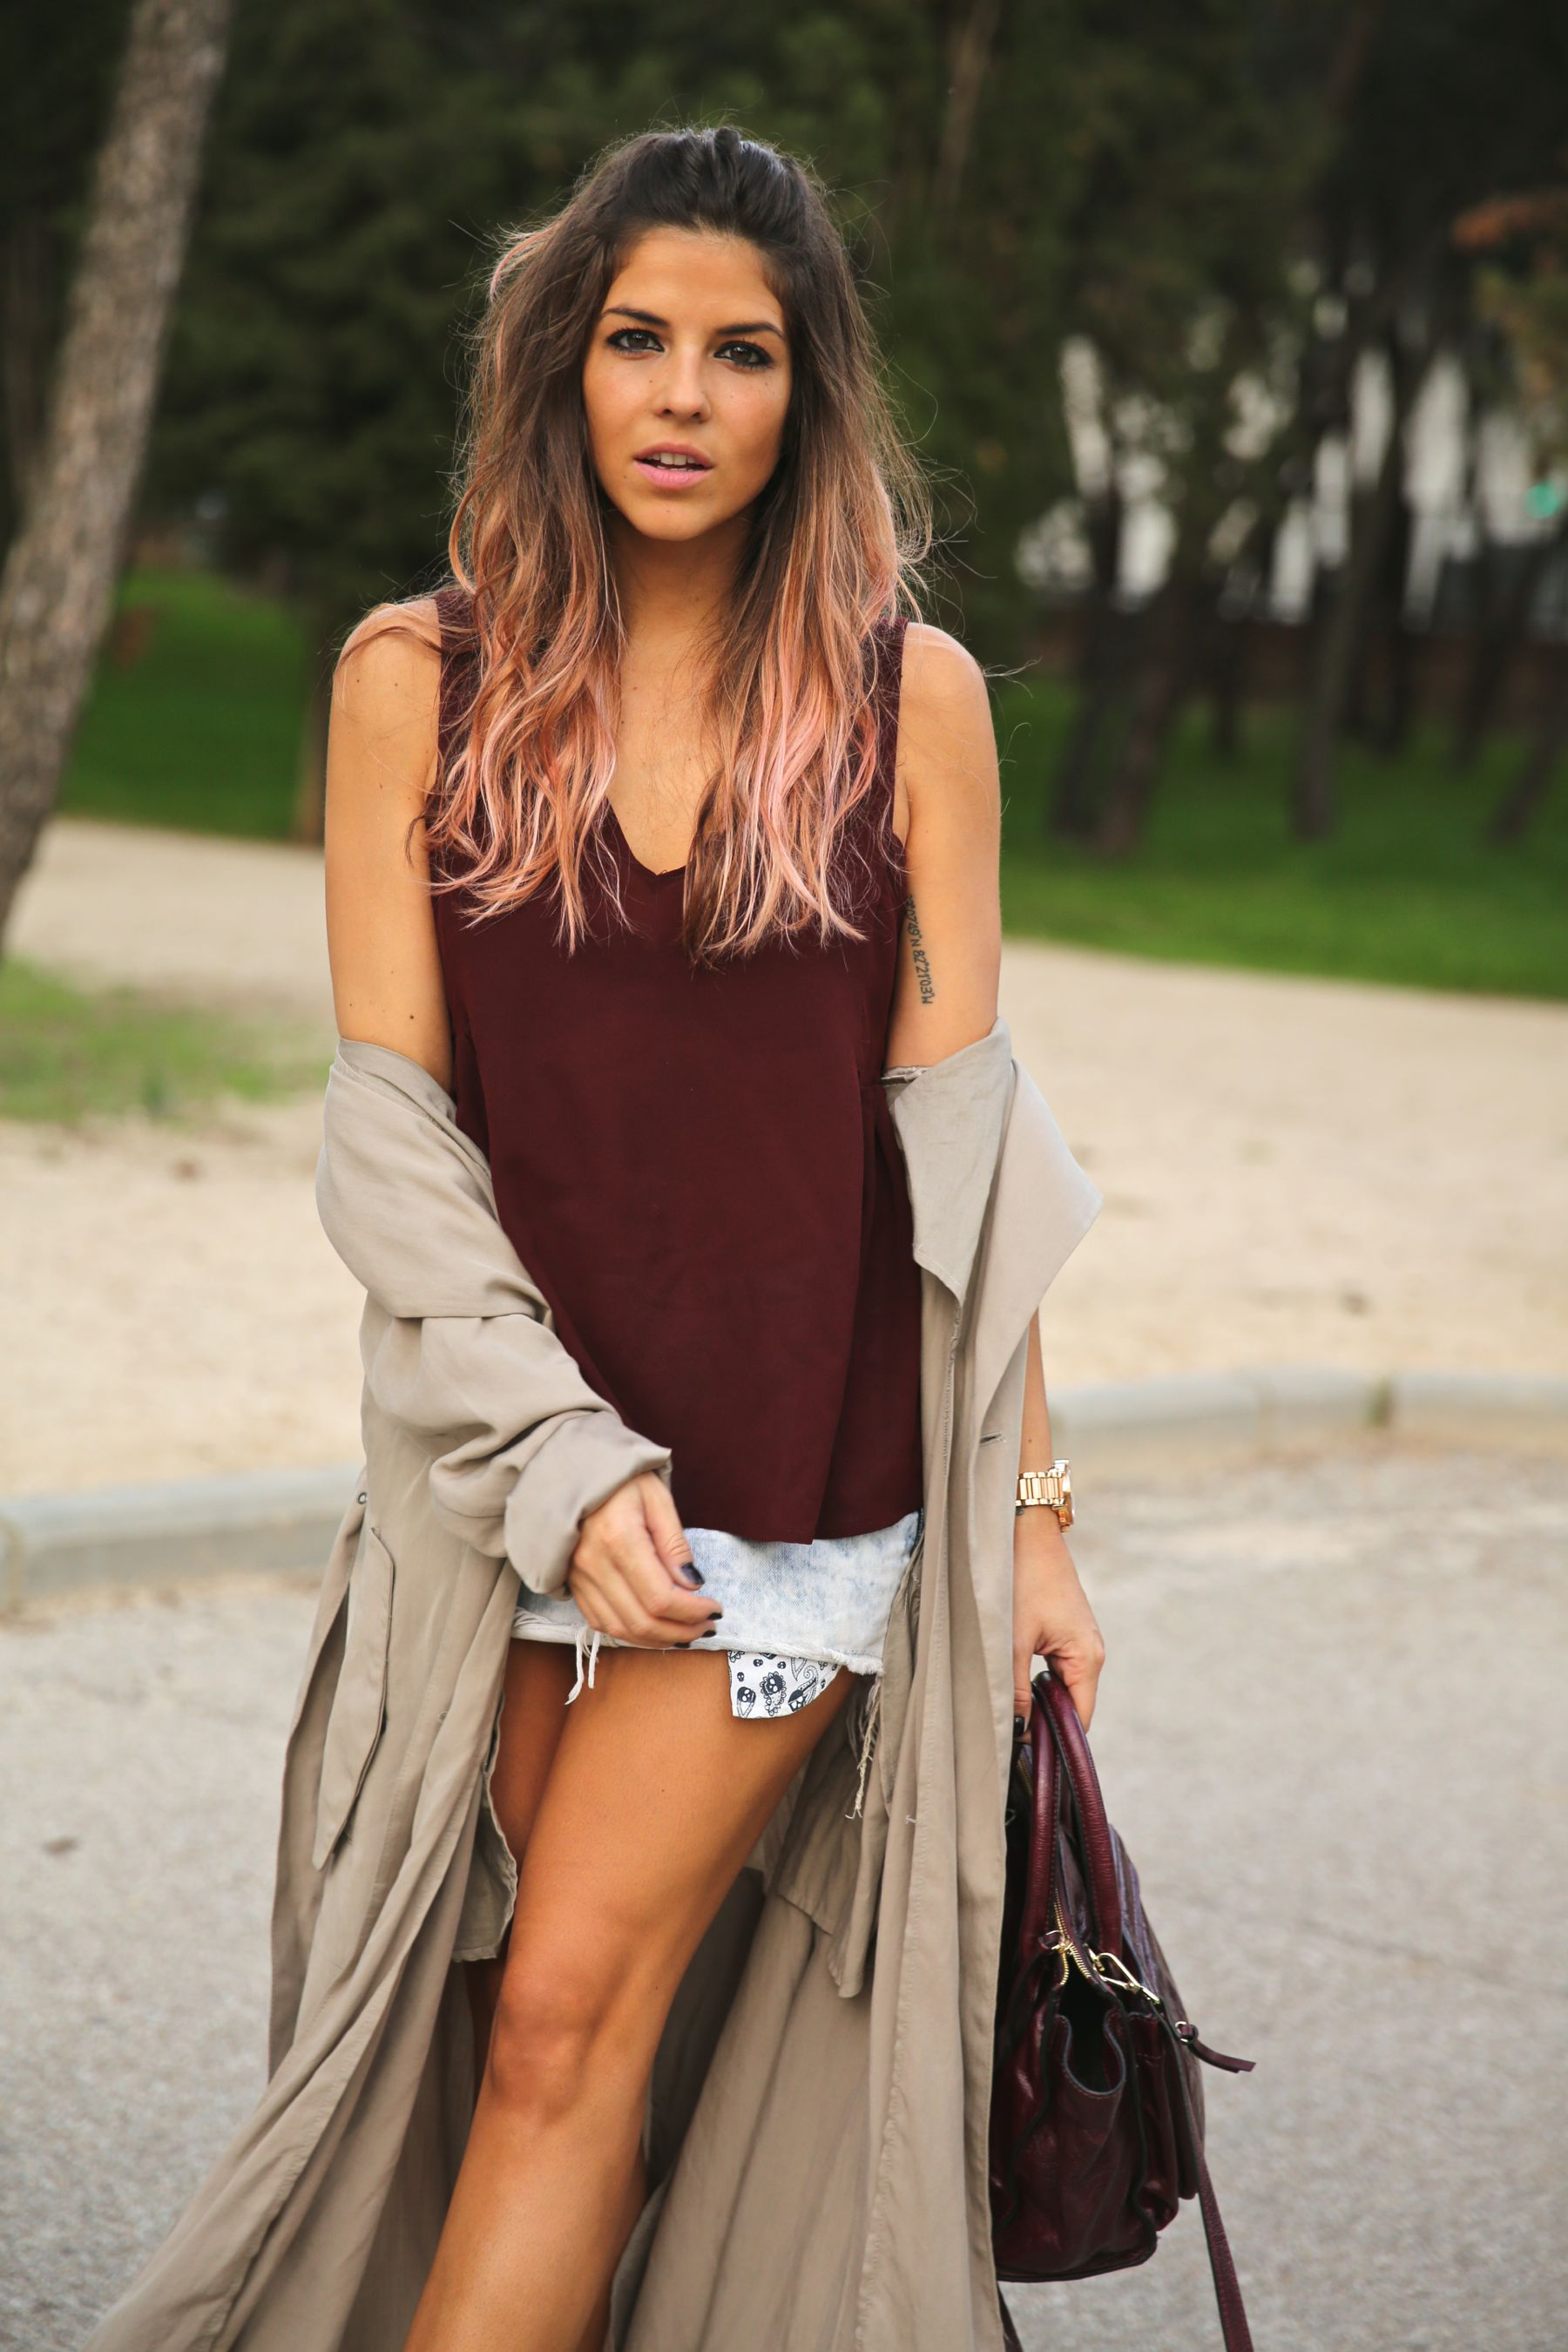 trendy_taste-look-outfit-street_style-ootd-blog-blogger-fashion_spain-moda_españa-boho-hippie-gabardina-botines_camperos-booties-gabardina-raincoat-burgundy_bag-zara-7